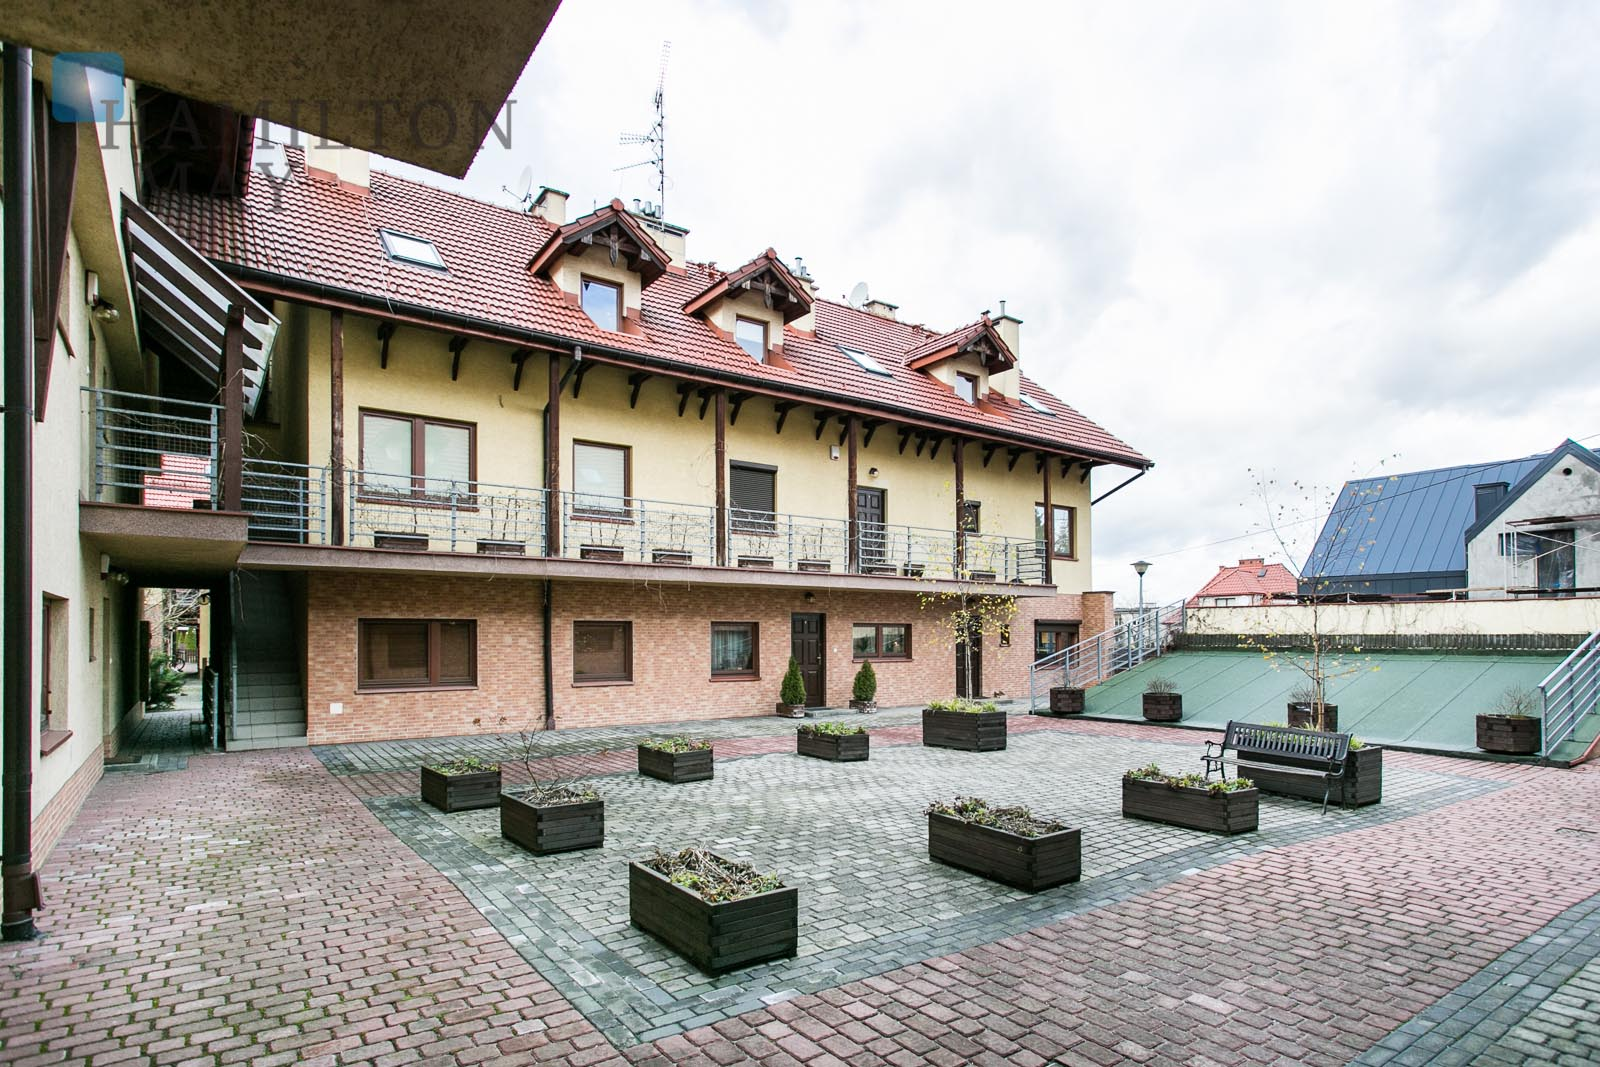 Spacious apartment in quiet part of Krakow, nearby Wolski forest Krakow for sale